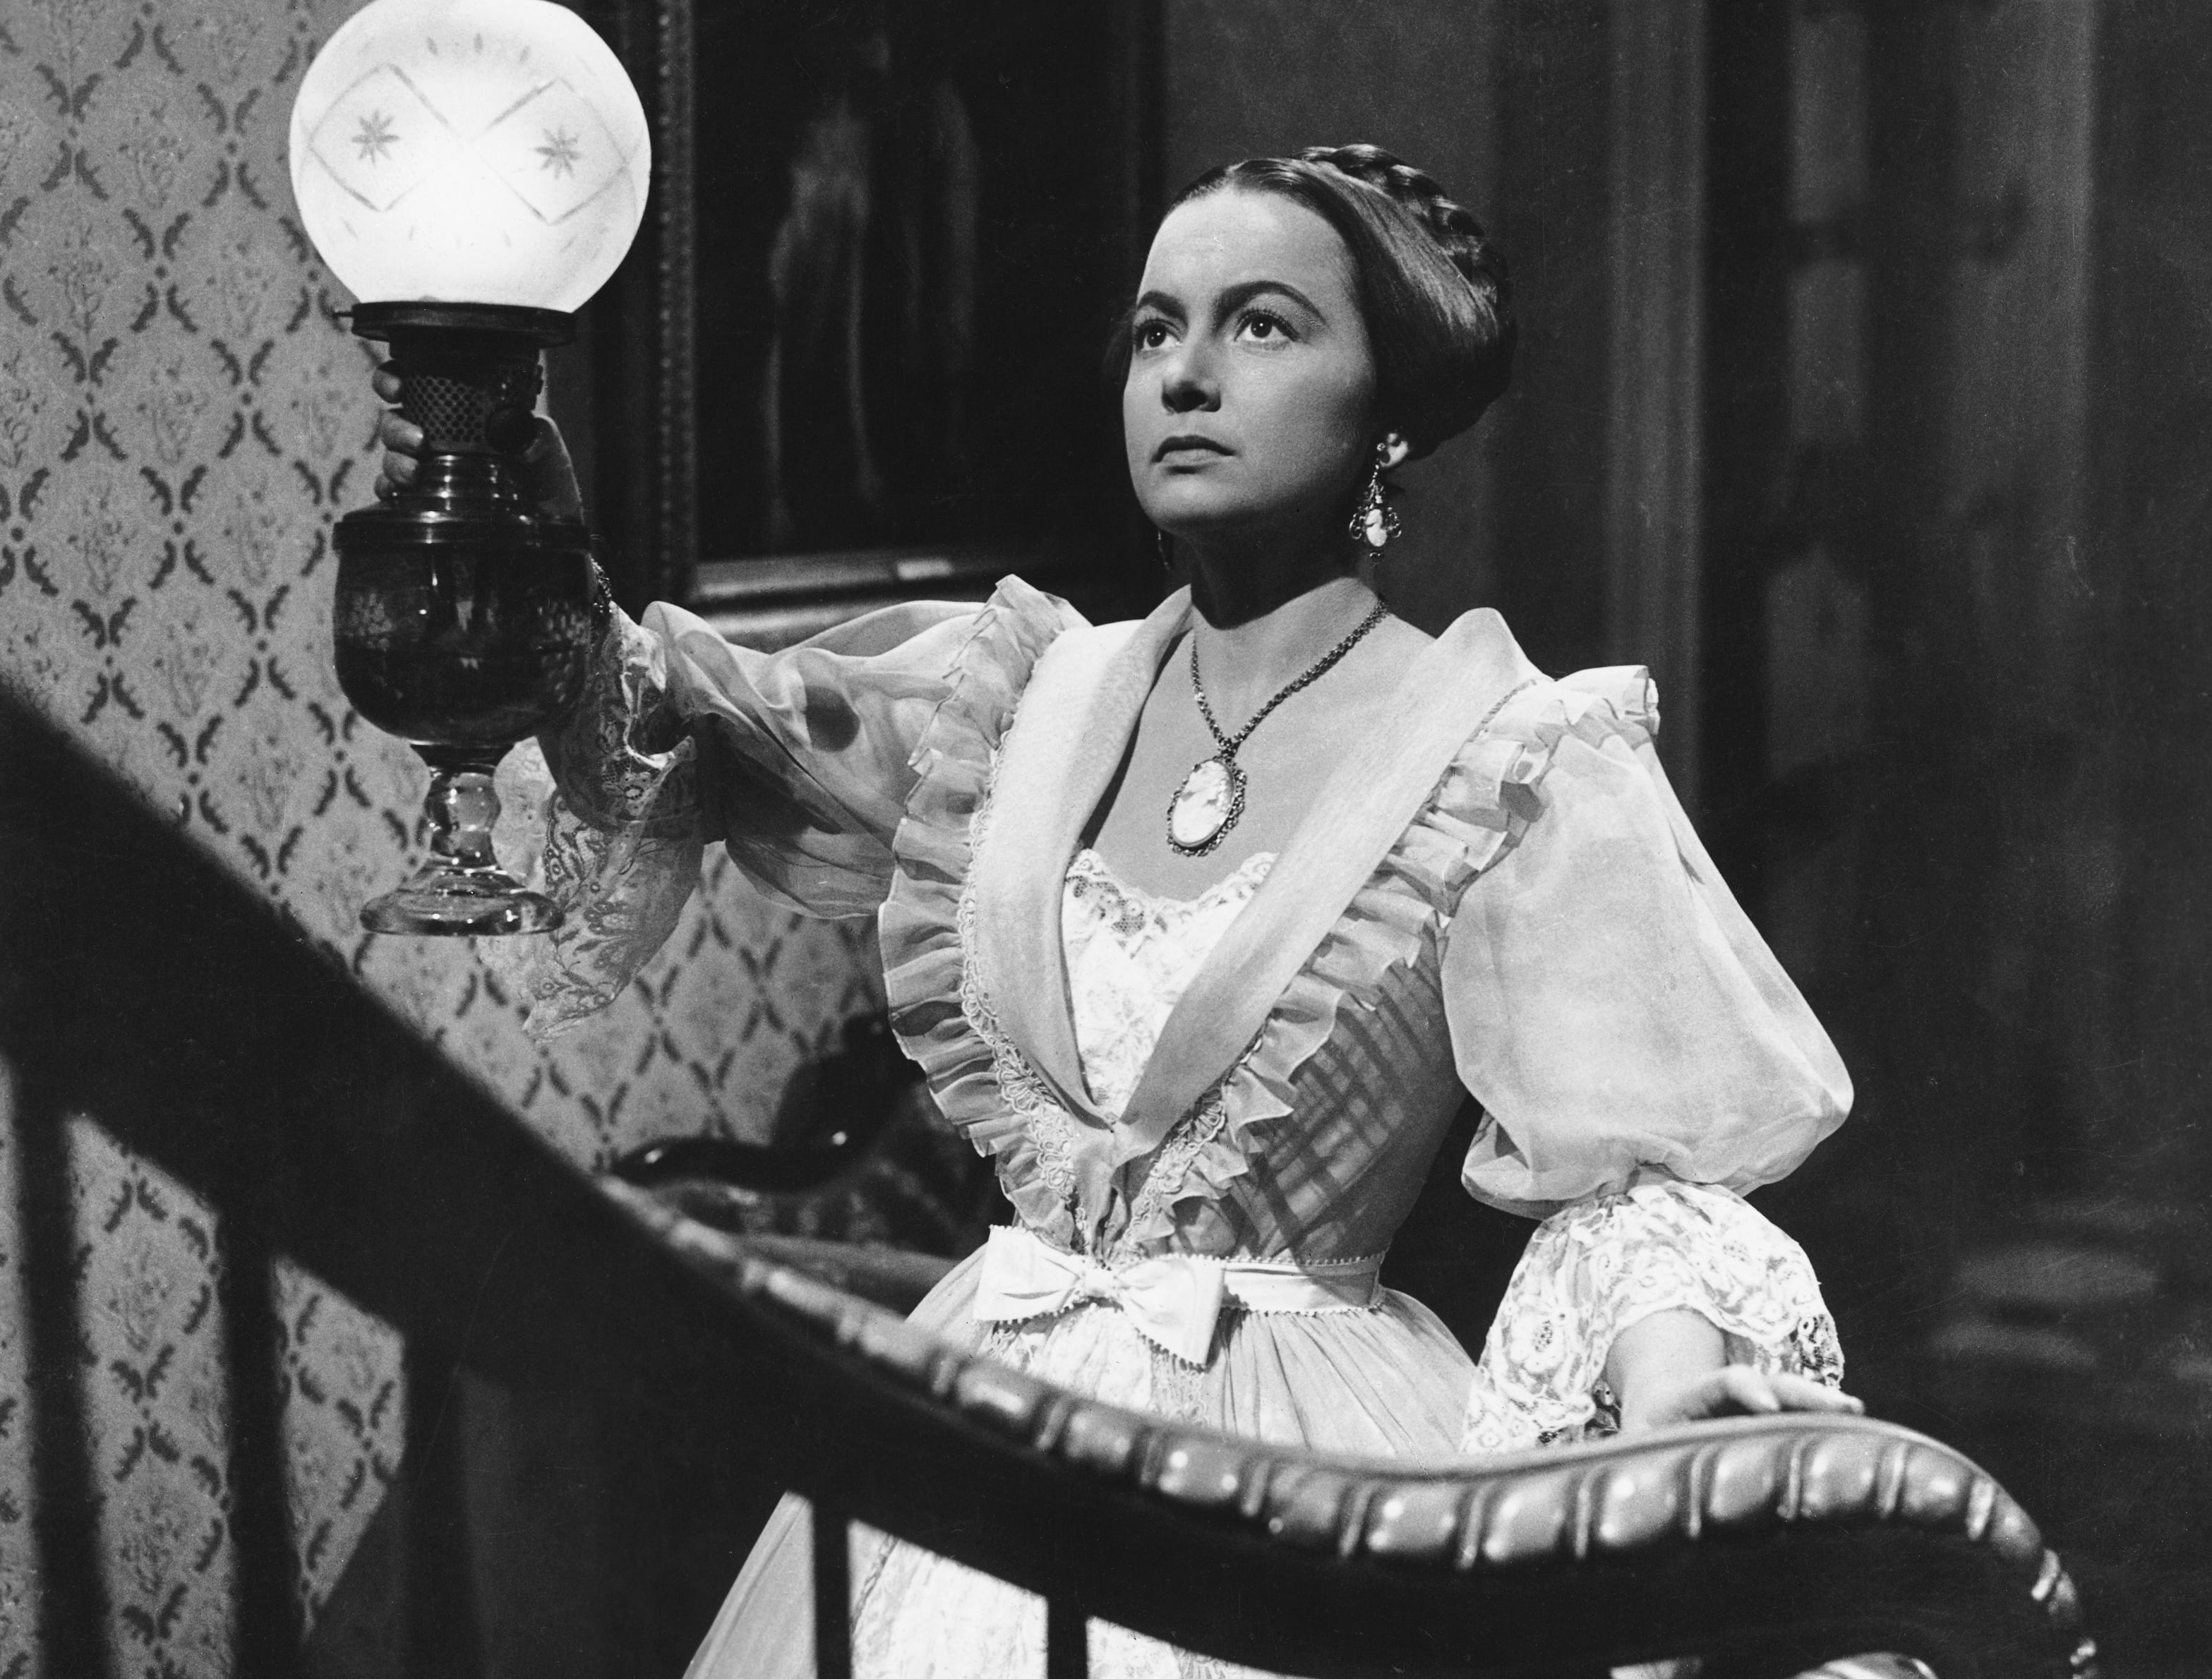 ONE TIME USE 2/21/2019 Olivia de Havilland as Catherine Sloper in the 1949 film The Heiress. (Photo by John Springer Collection/CORBIS/Corbis via Getty Images)